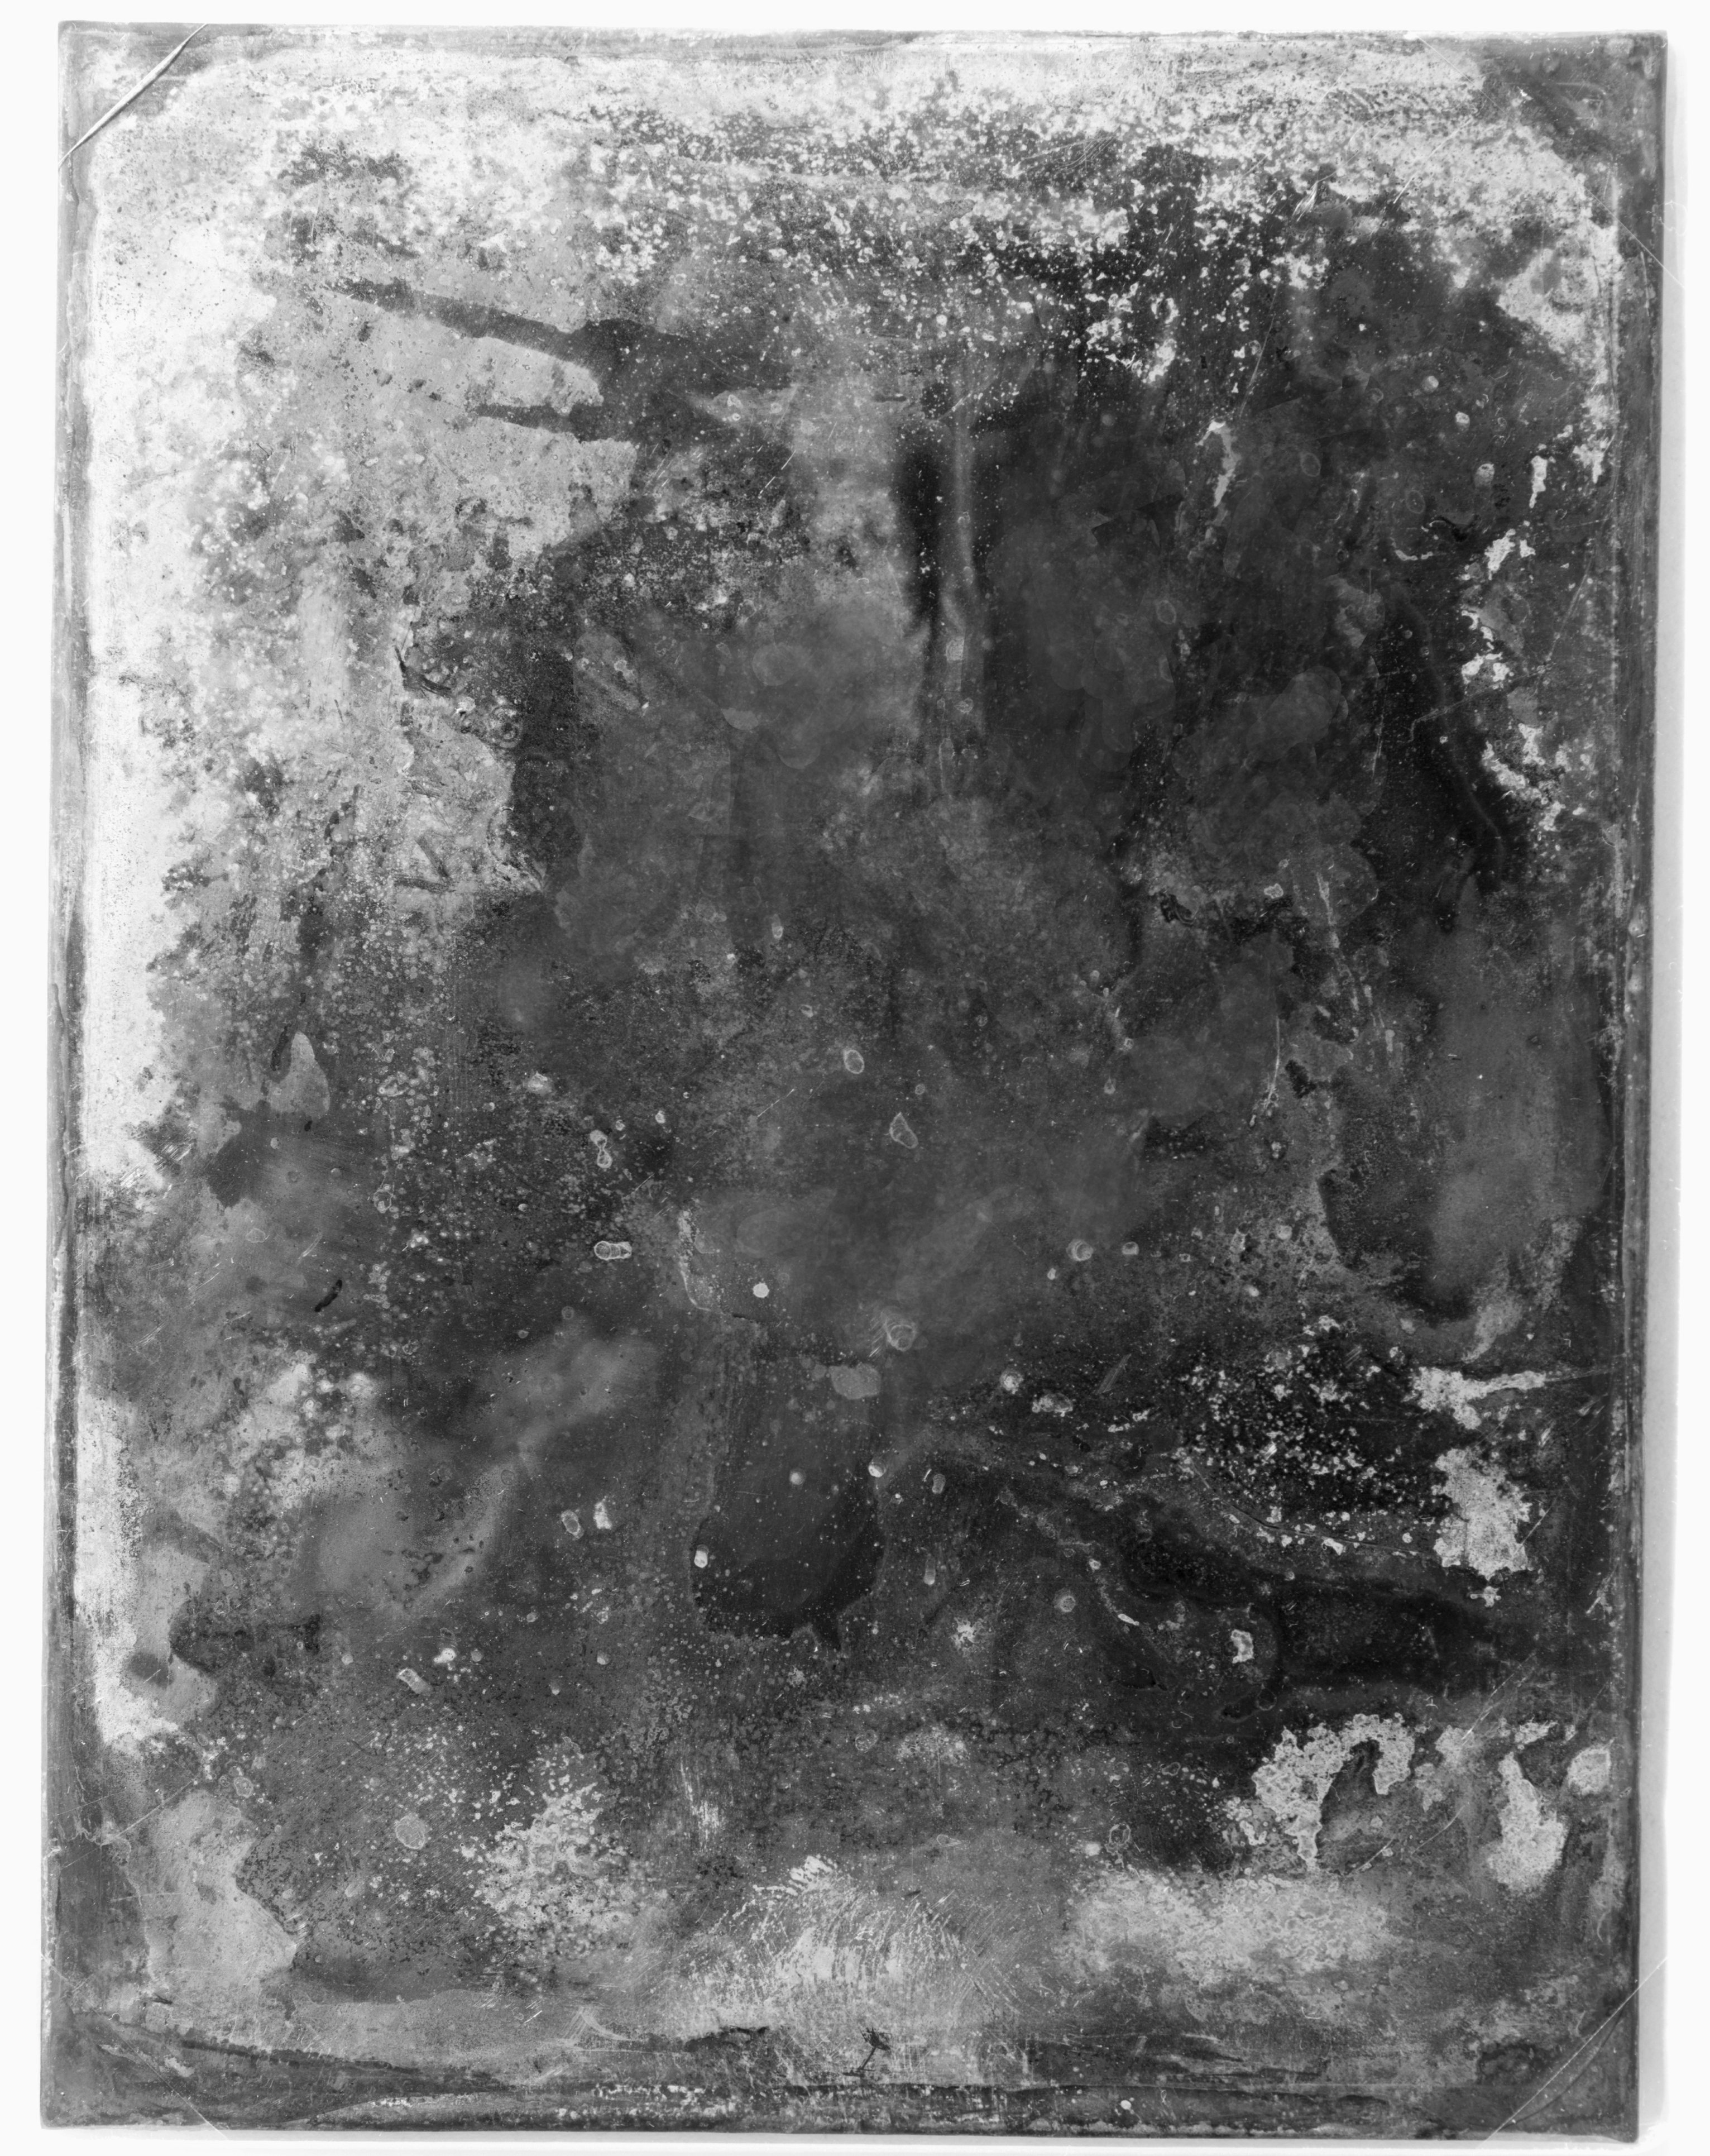 free black and white old grungy film texture texture lt